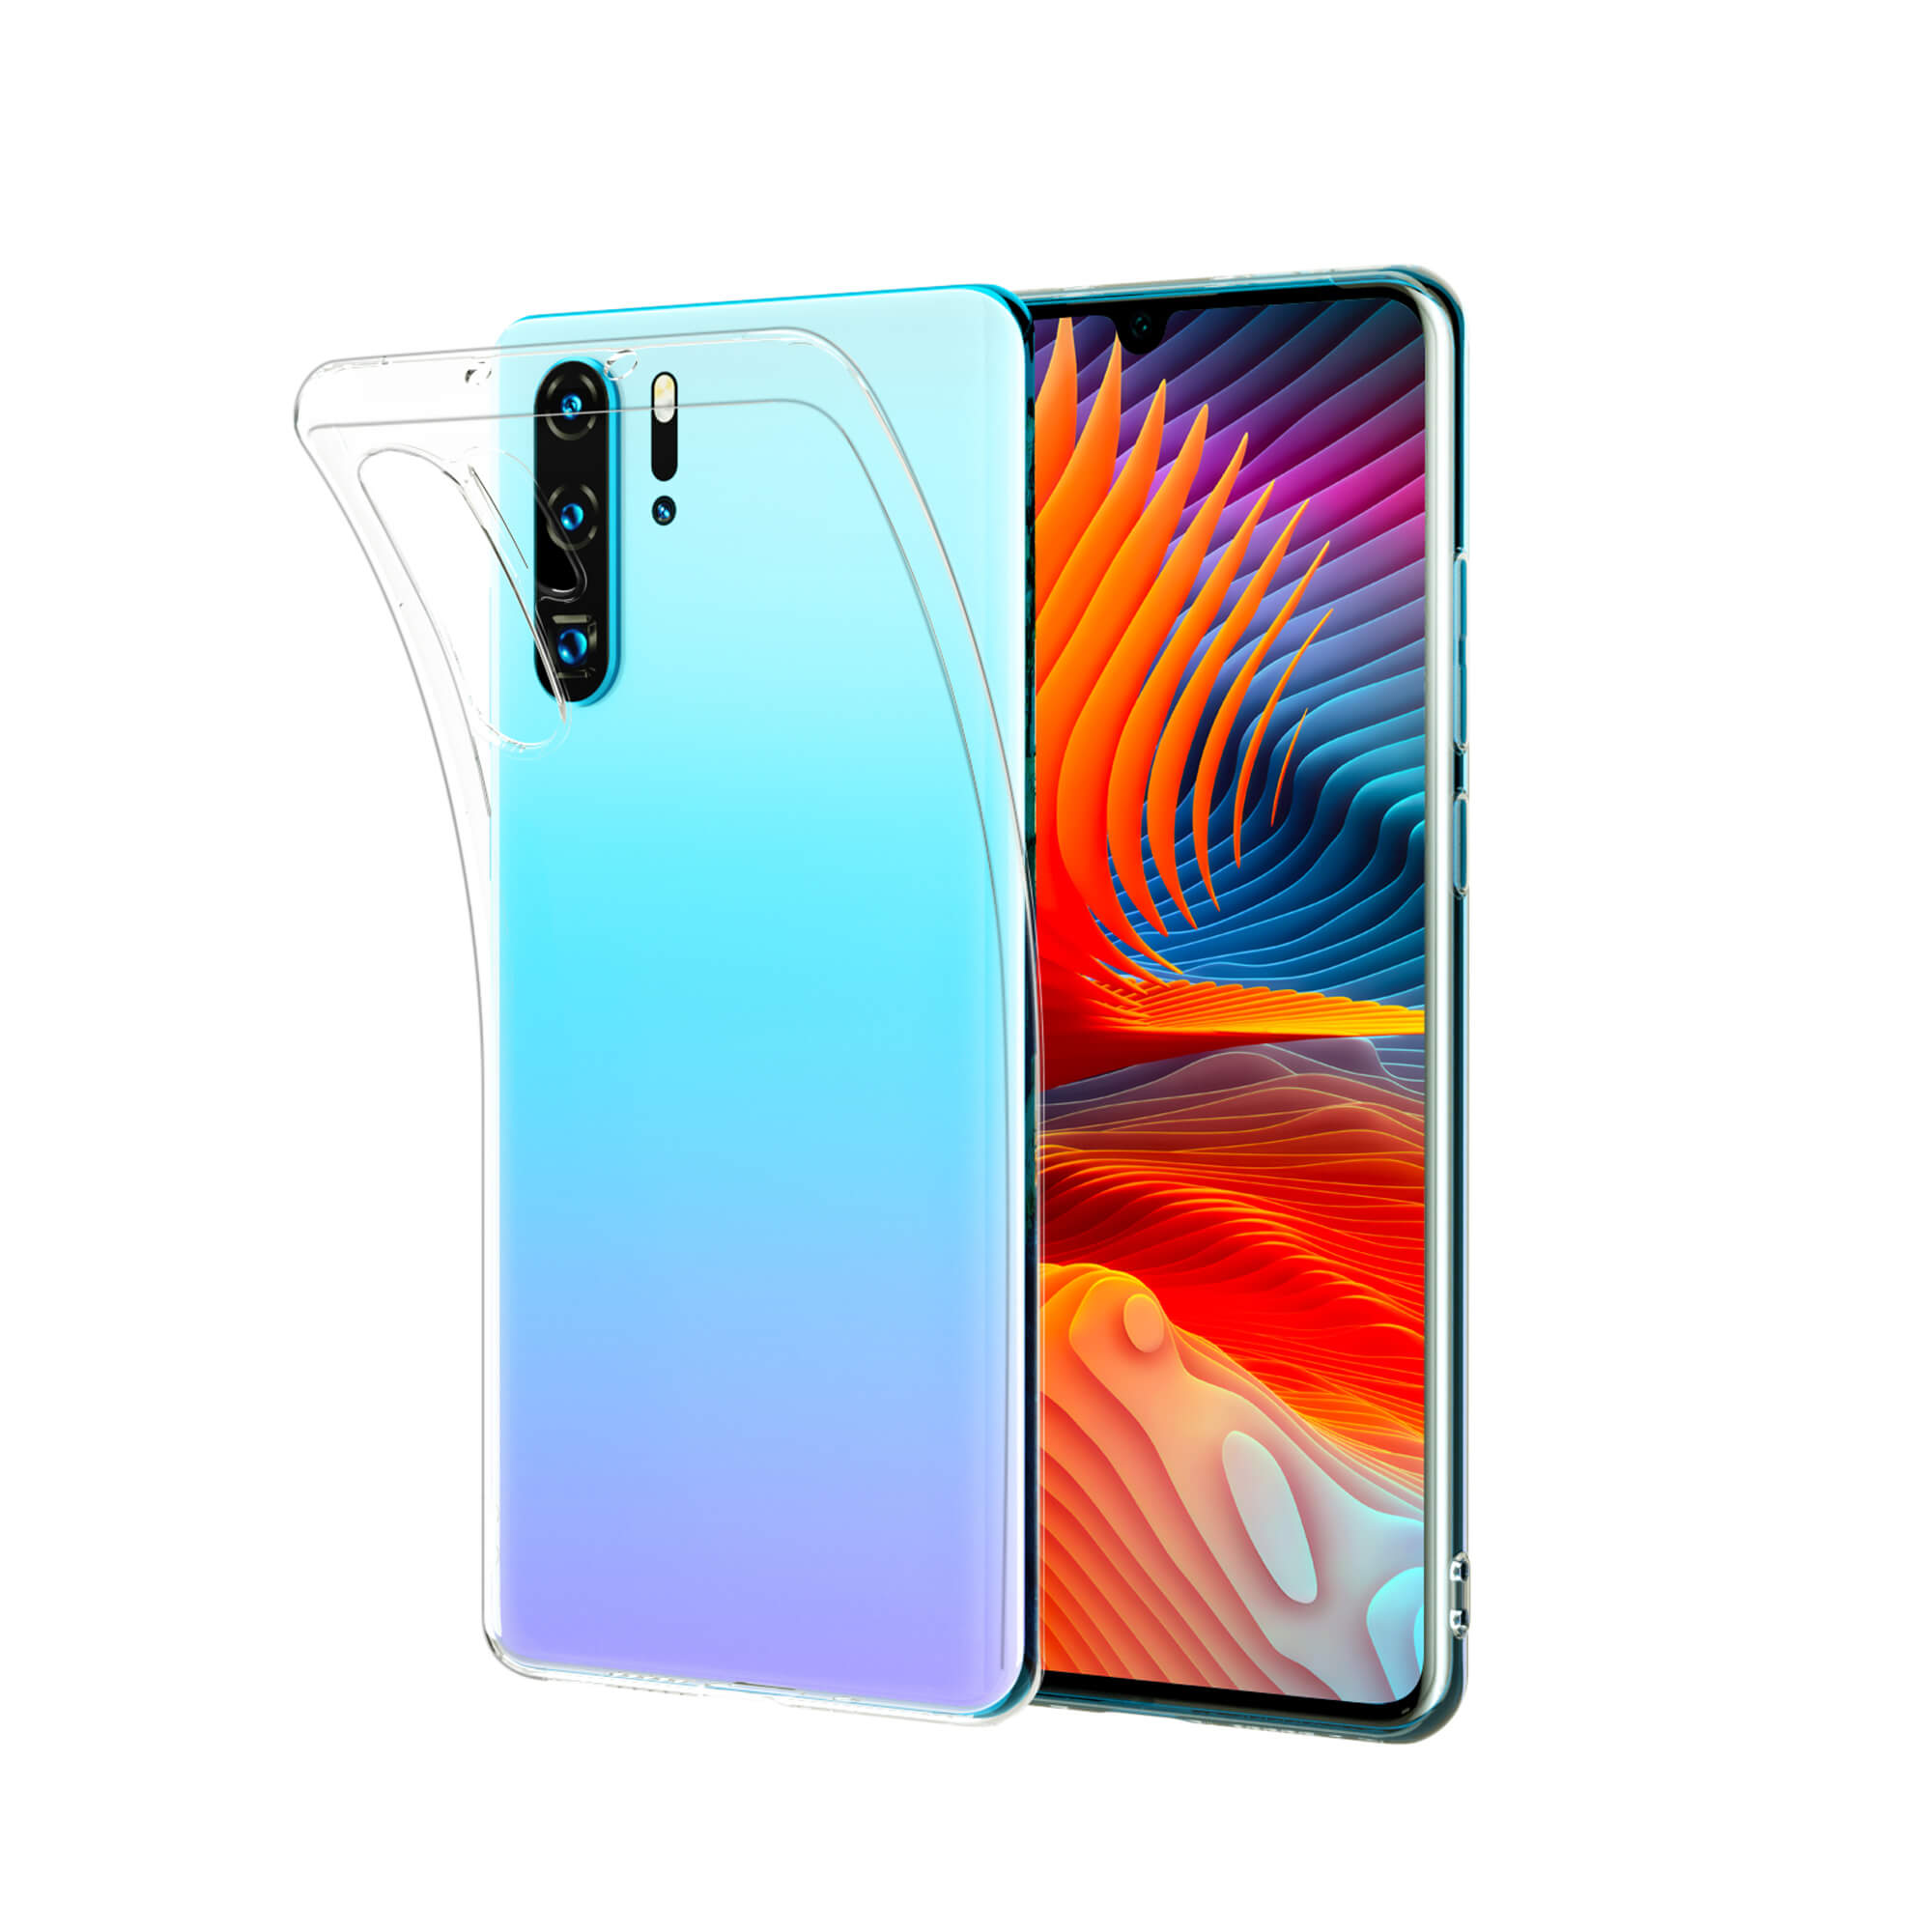 Shockproof-Silicone-Protective-Clear-Gel-Cover-Case-For-Huawei-P20-Pro-P-Smart thumbnail 102